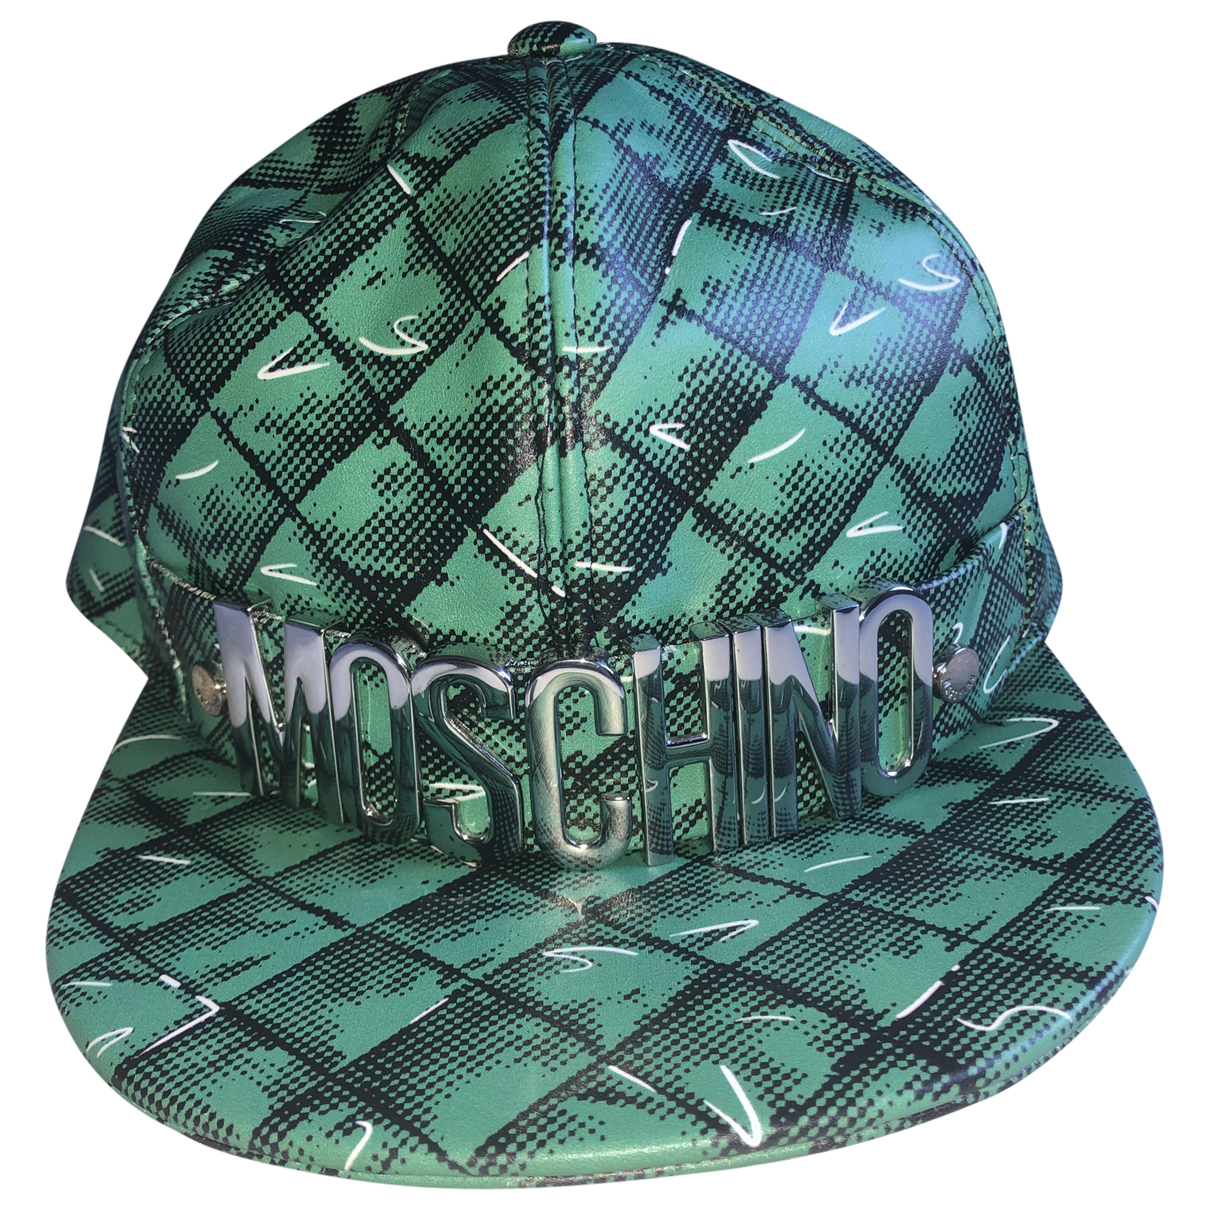 Moschino N Green Leather hat & pull on hat for Men 57 cm